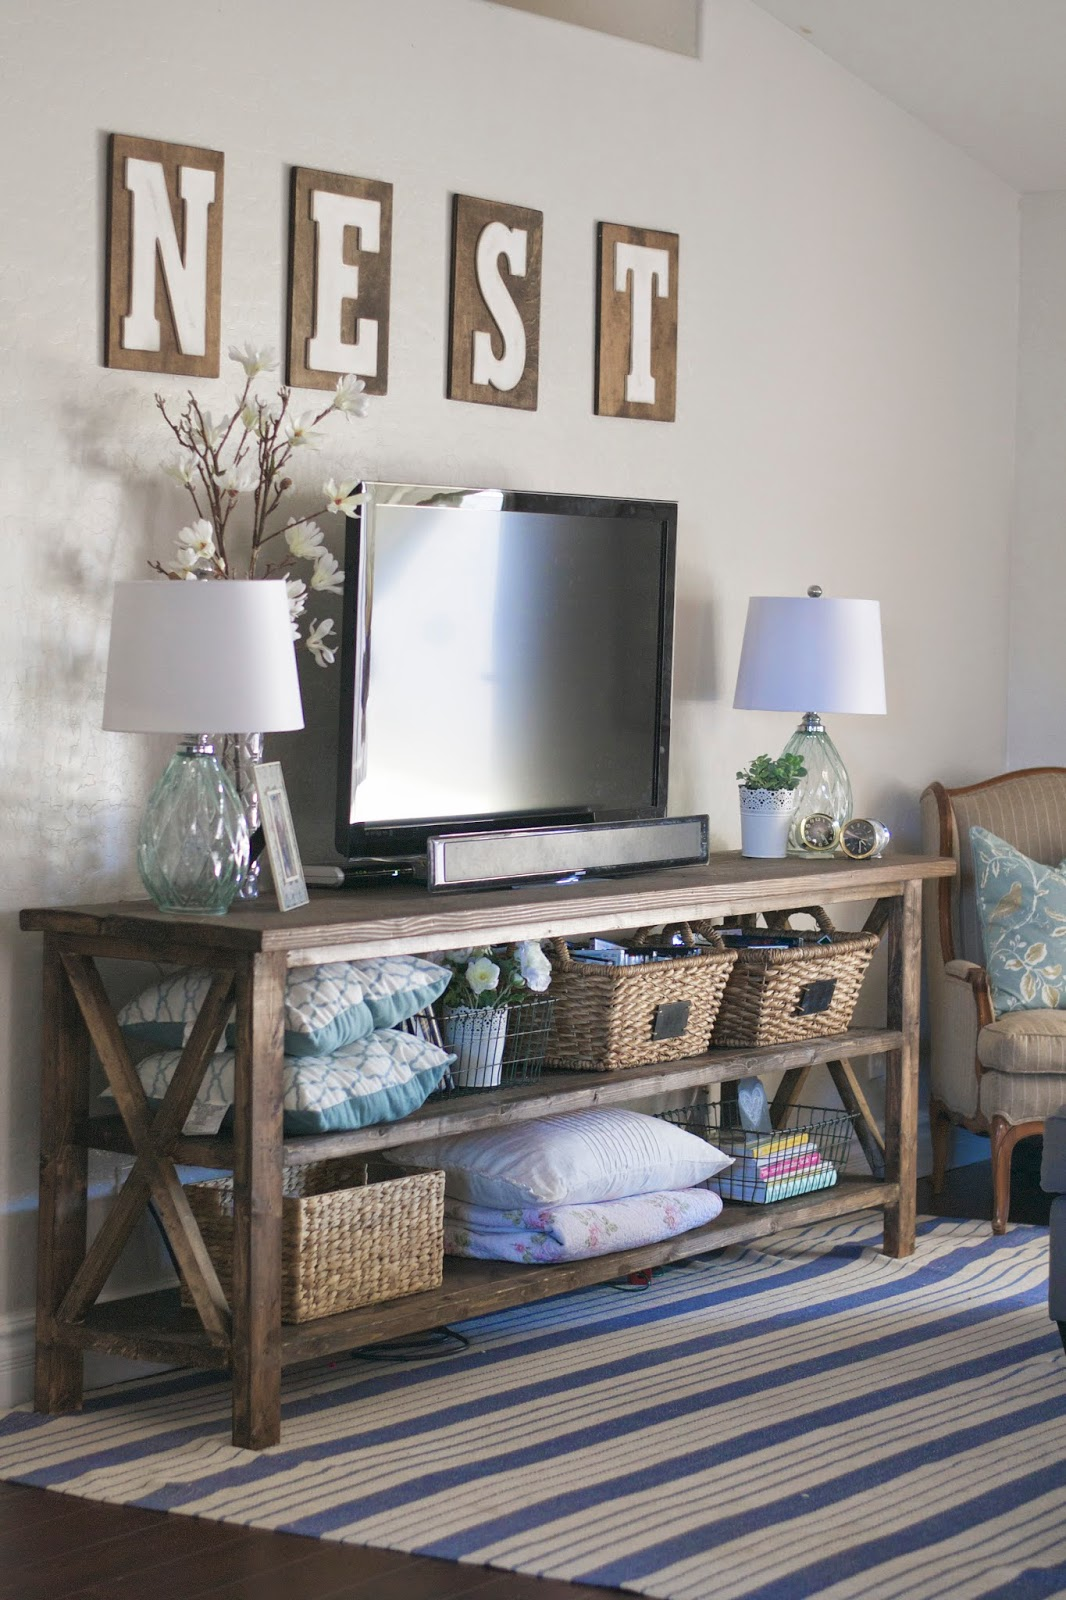 Decorate Your Living Room: DIY Farmhouse Console &a Peek Into Our Family Room